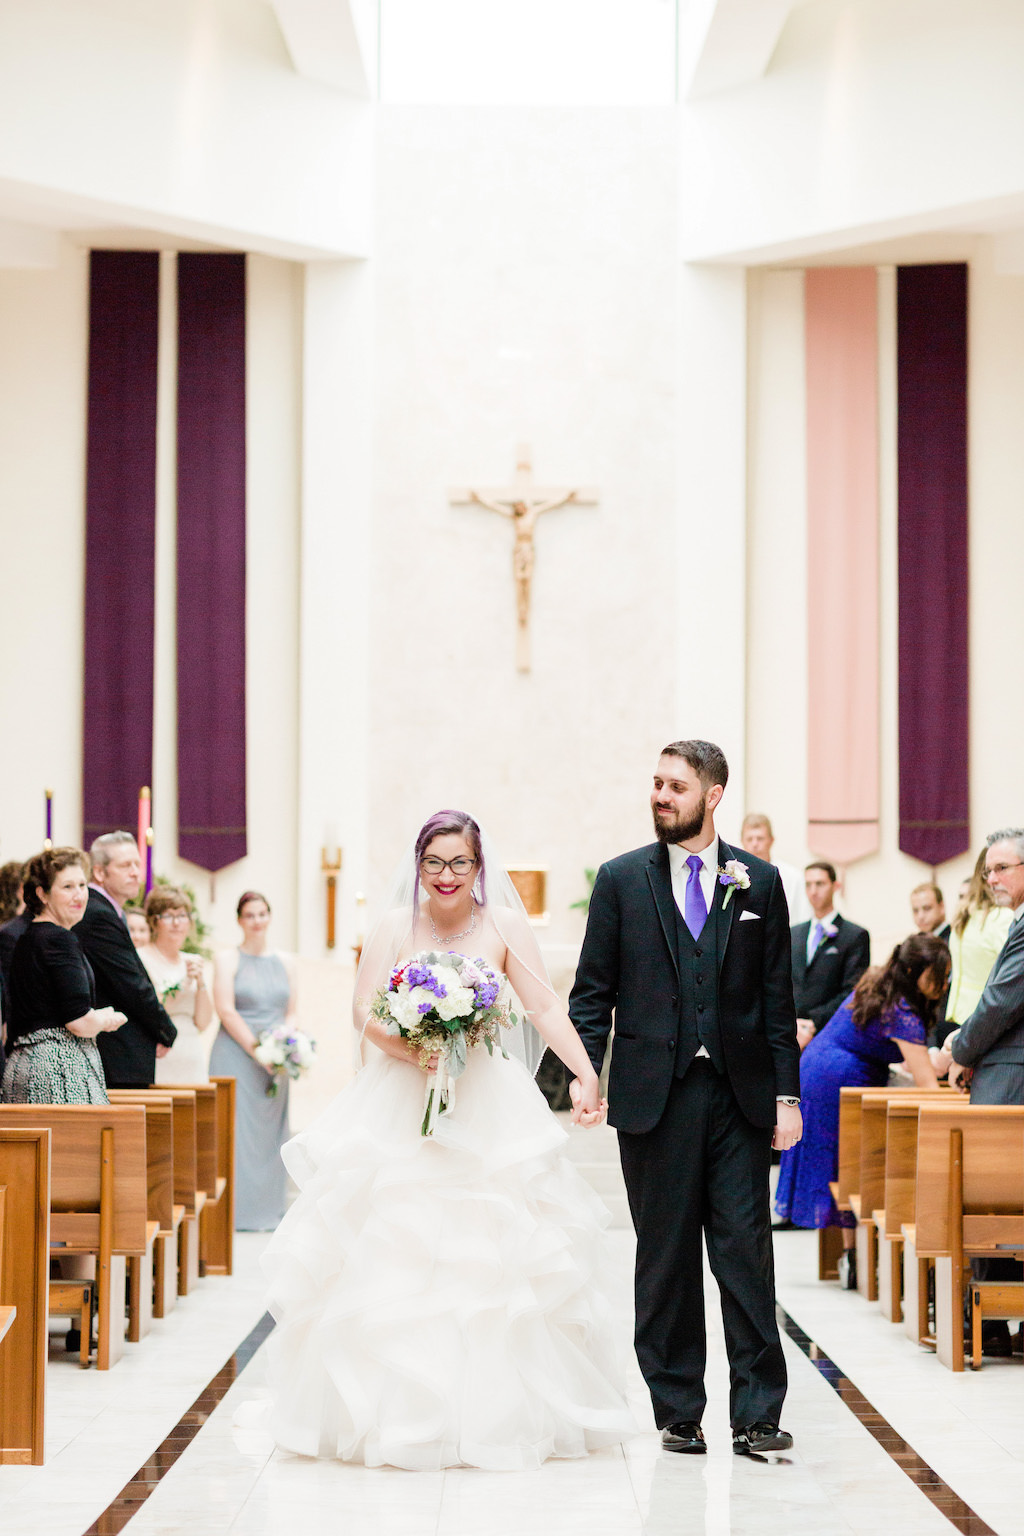 Modern, Unique Florida Bride and Groom Just Married in Wedding Recessional, Wearing Ballgown Wedding Dress, Holding Purple and Ivory Floral Bouquet, Traditional Catholic Wedding Ceremony